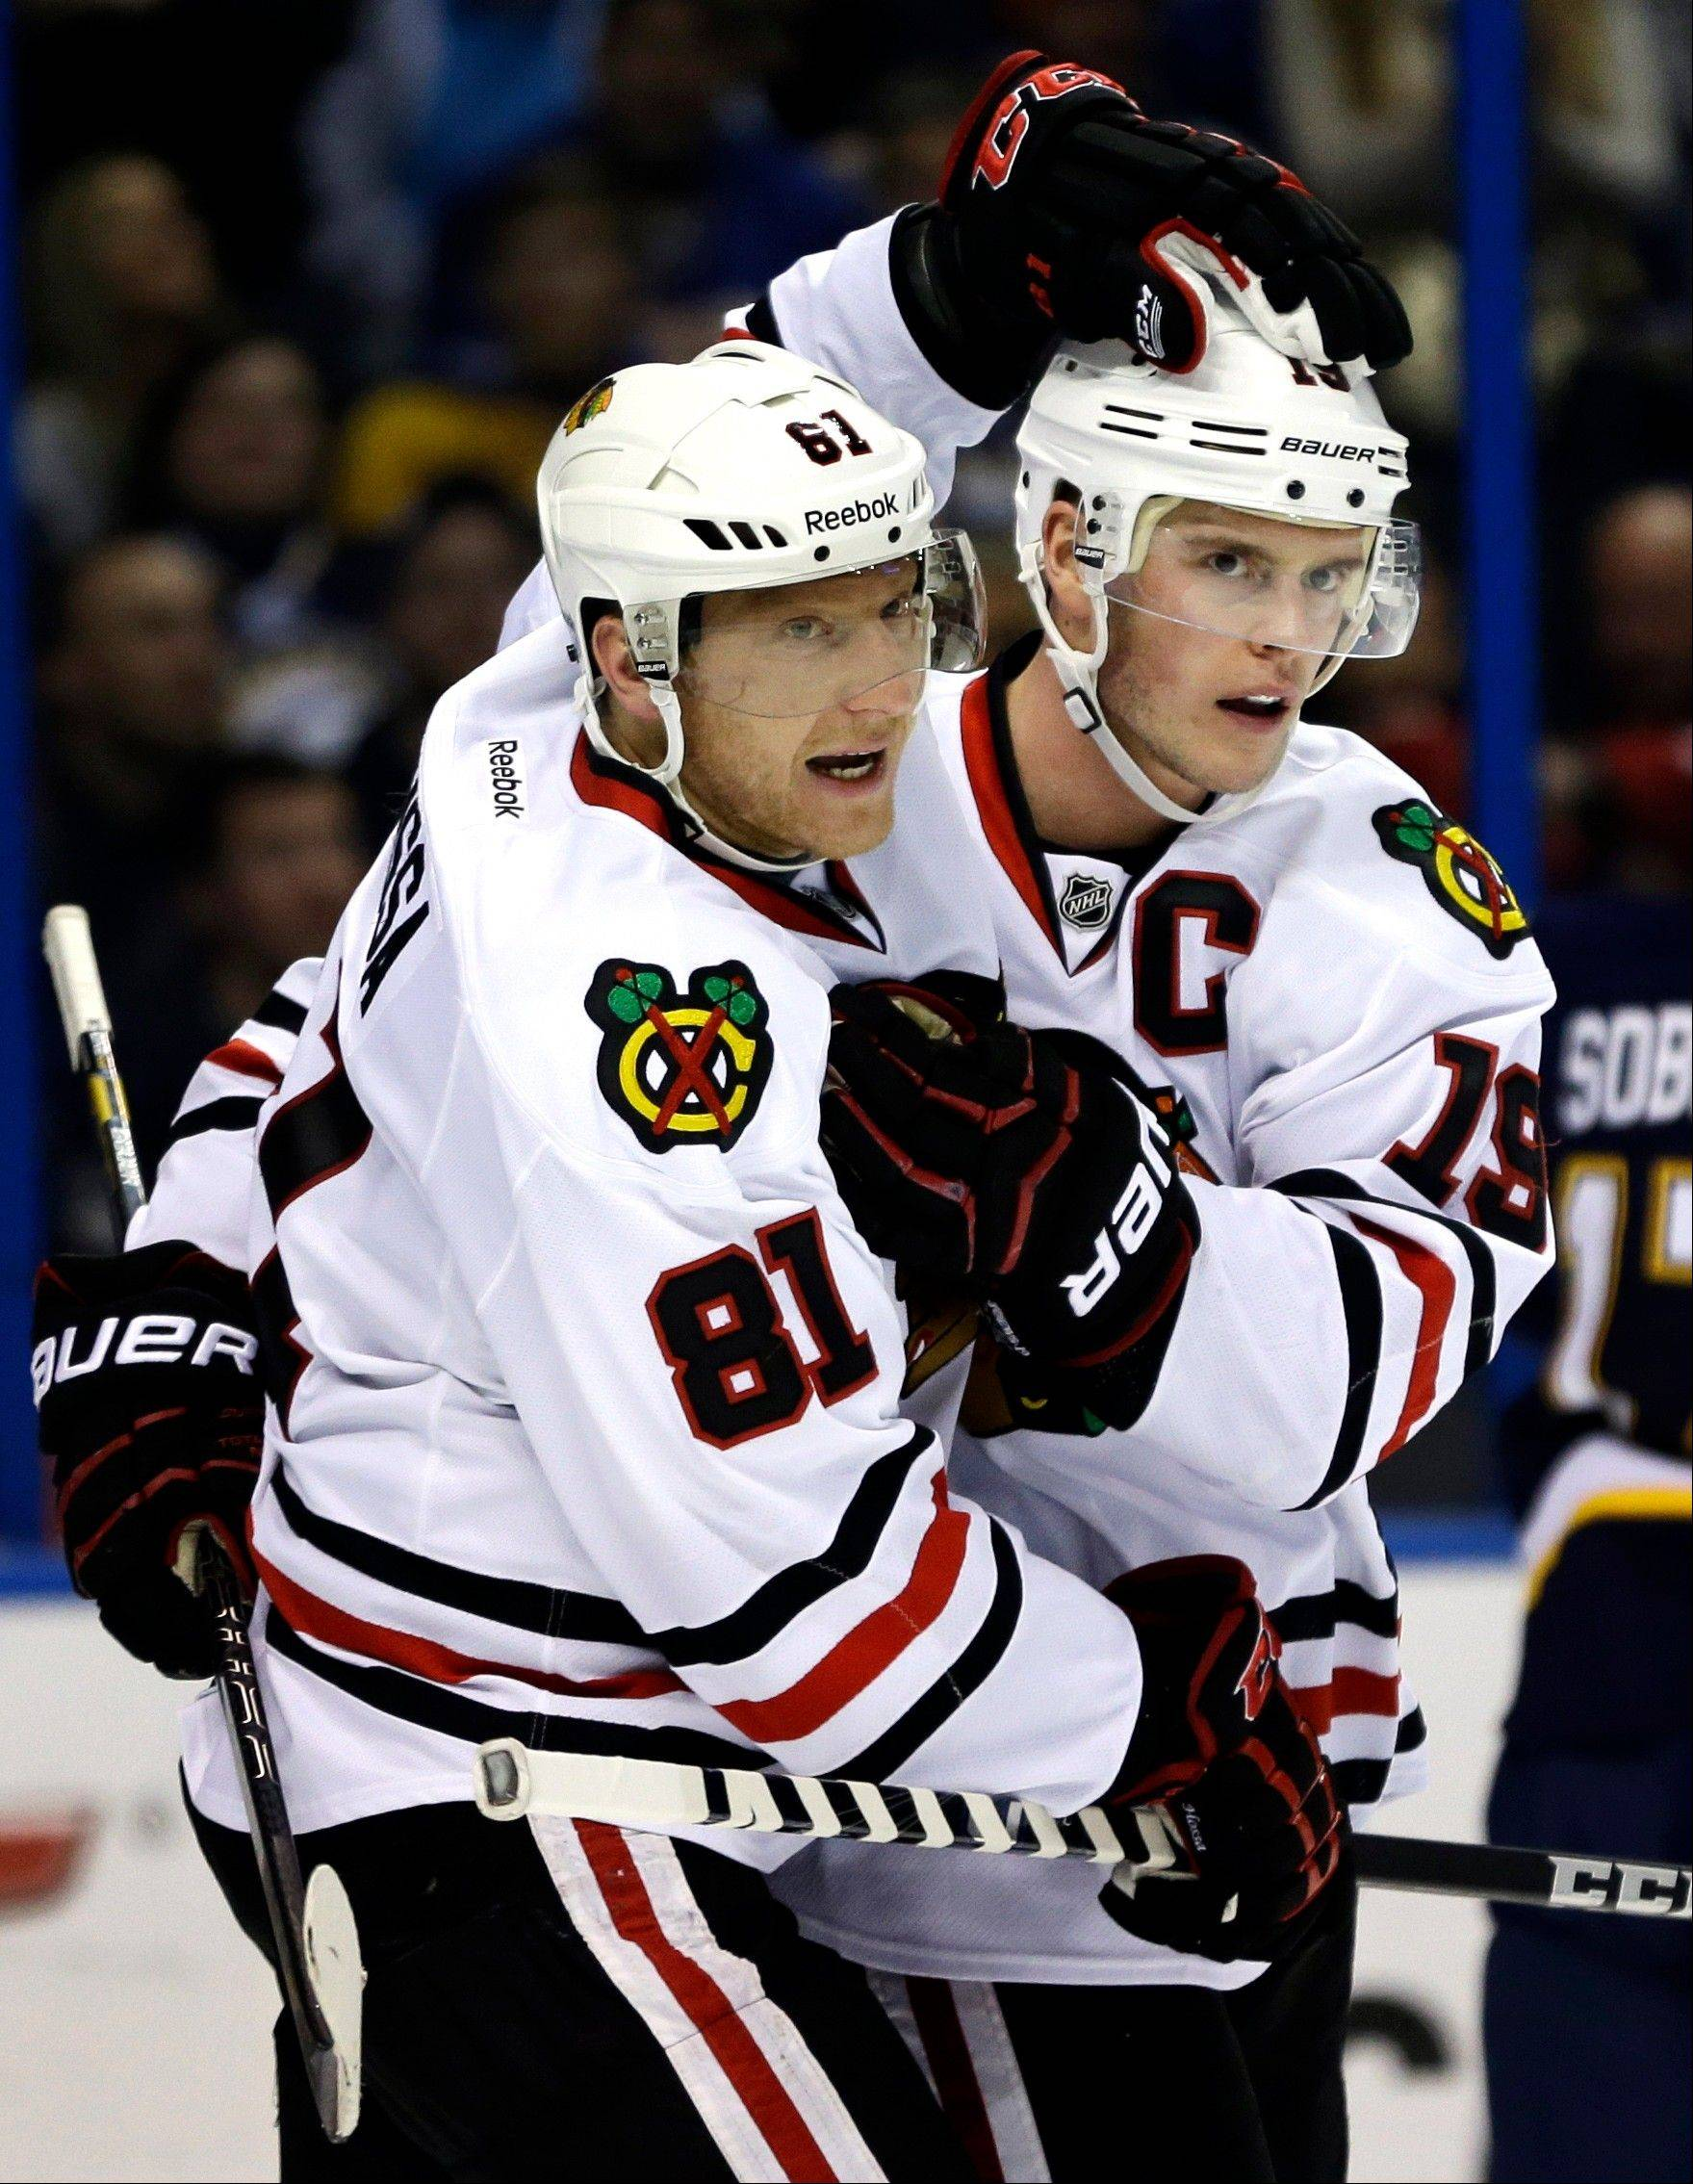 Chicago Blackhawks' Jonathan Toews, right, is congratulated by Marian Hossa, of Slovakia, after Toews scored his second goal of an NHL hockey game during the third period against the St. Louis Blues, Thursday, Feb. 28, 2013, in St. Louis. The Blackhawks won 3-0. (AP Photo/Jeff Roberson)